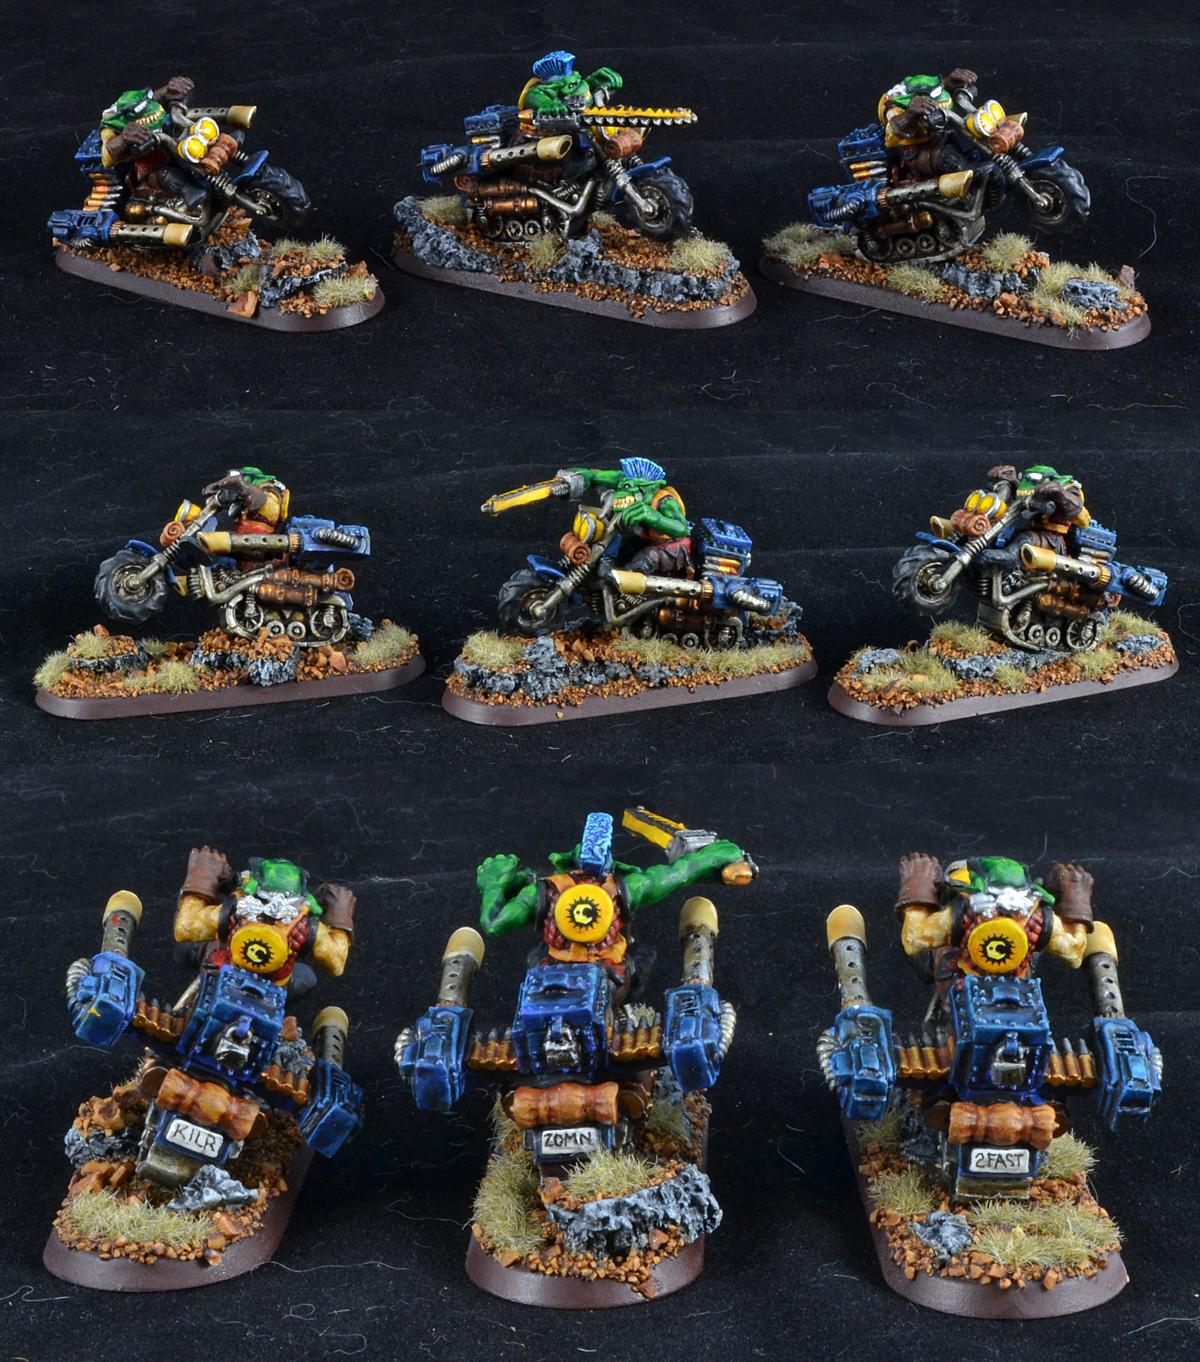 Bad Moons, Gretchin, Orks, Rt, Warbike, Warhammer 40,000